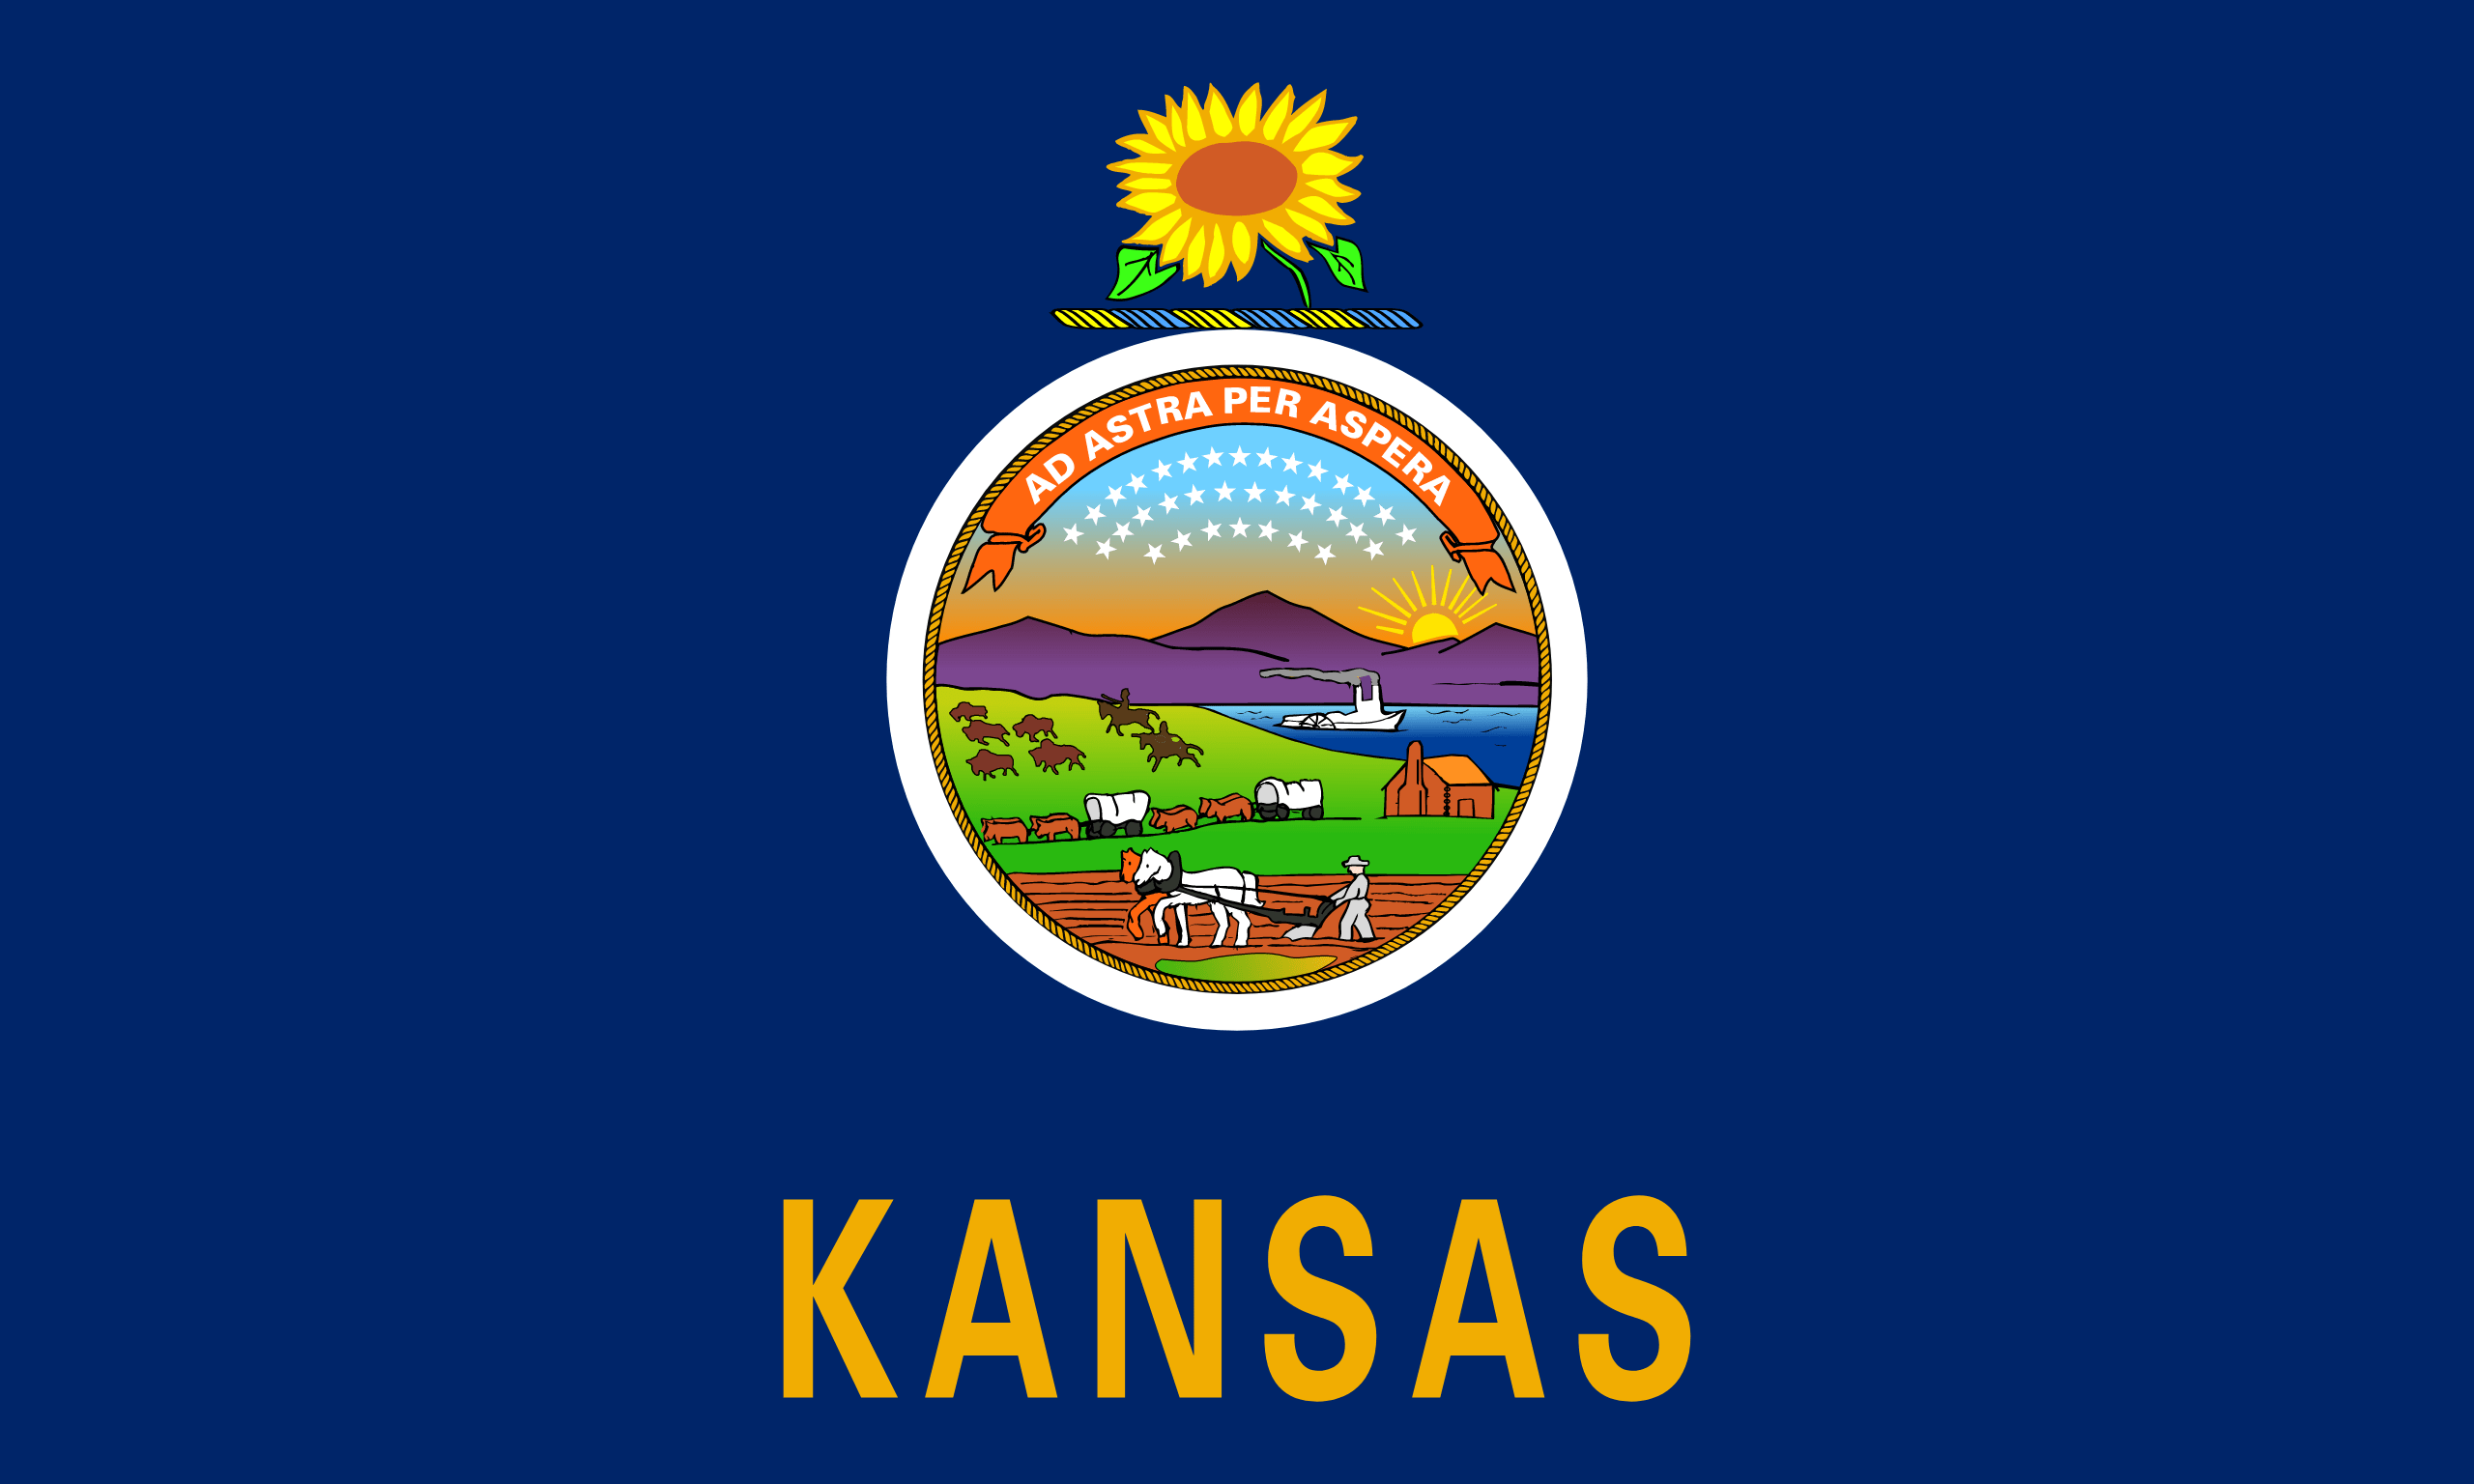 Kansas License Plate Lookup